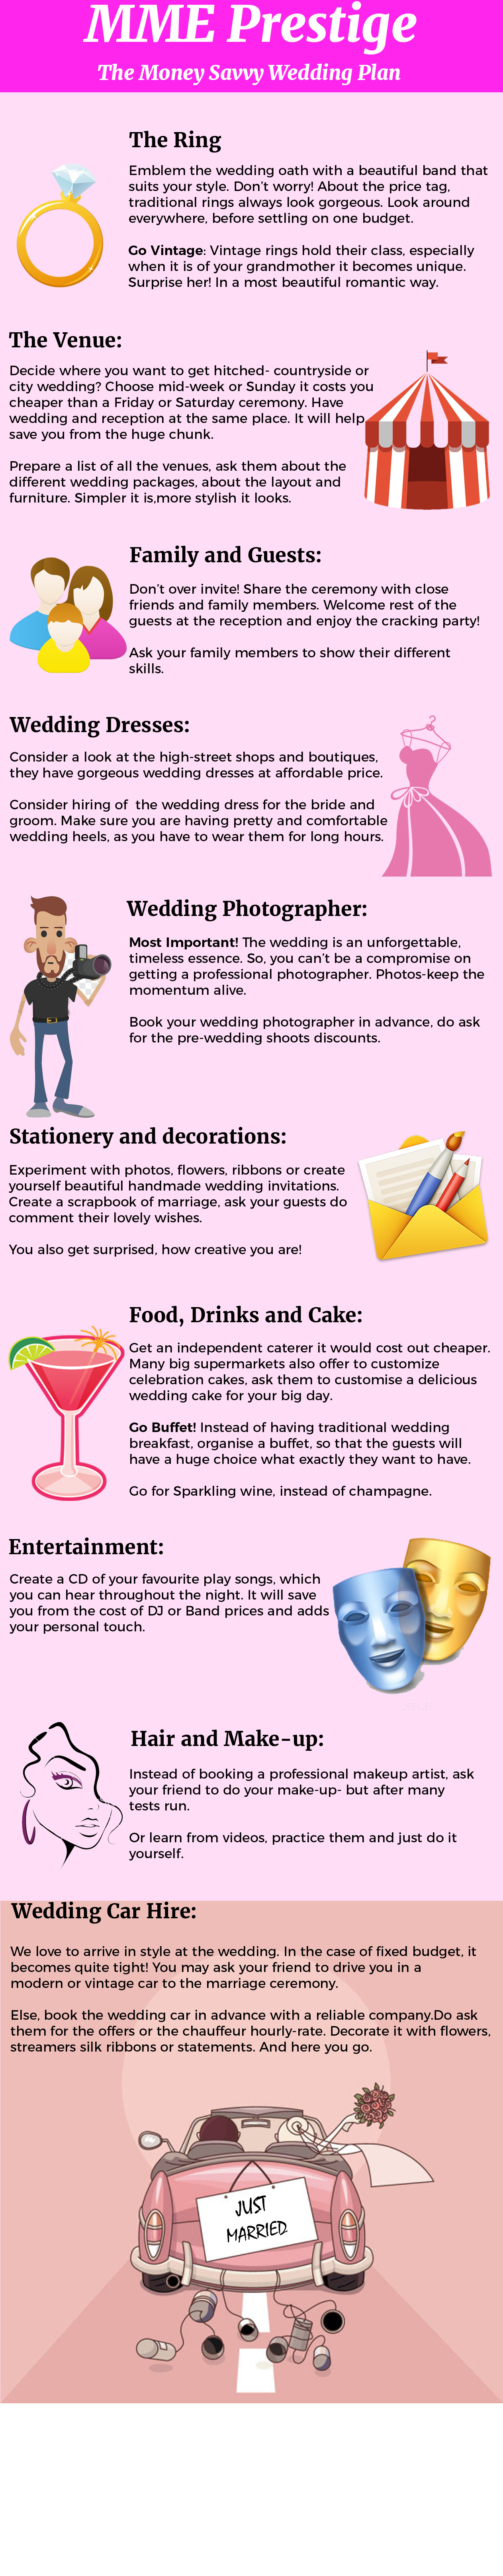 The money savvy wedding plan guide wedding the money savvy wedding plan guide infographic solutioingenieria Image collections